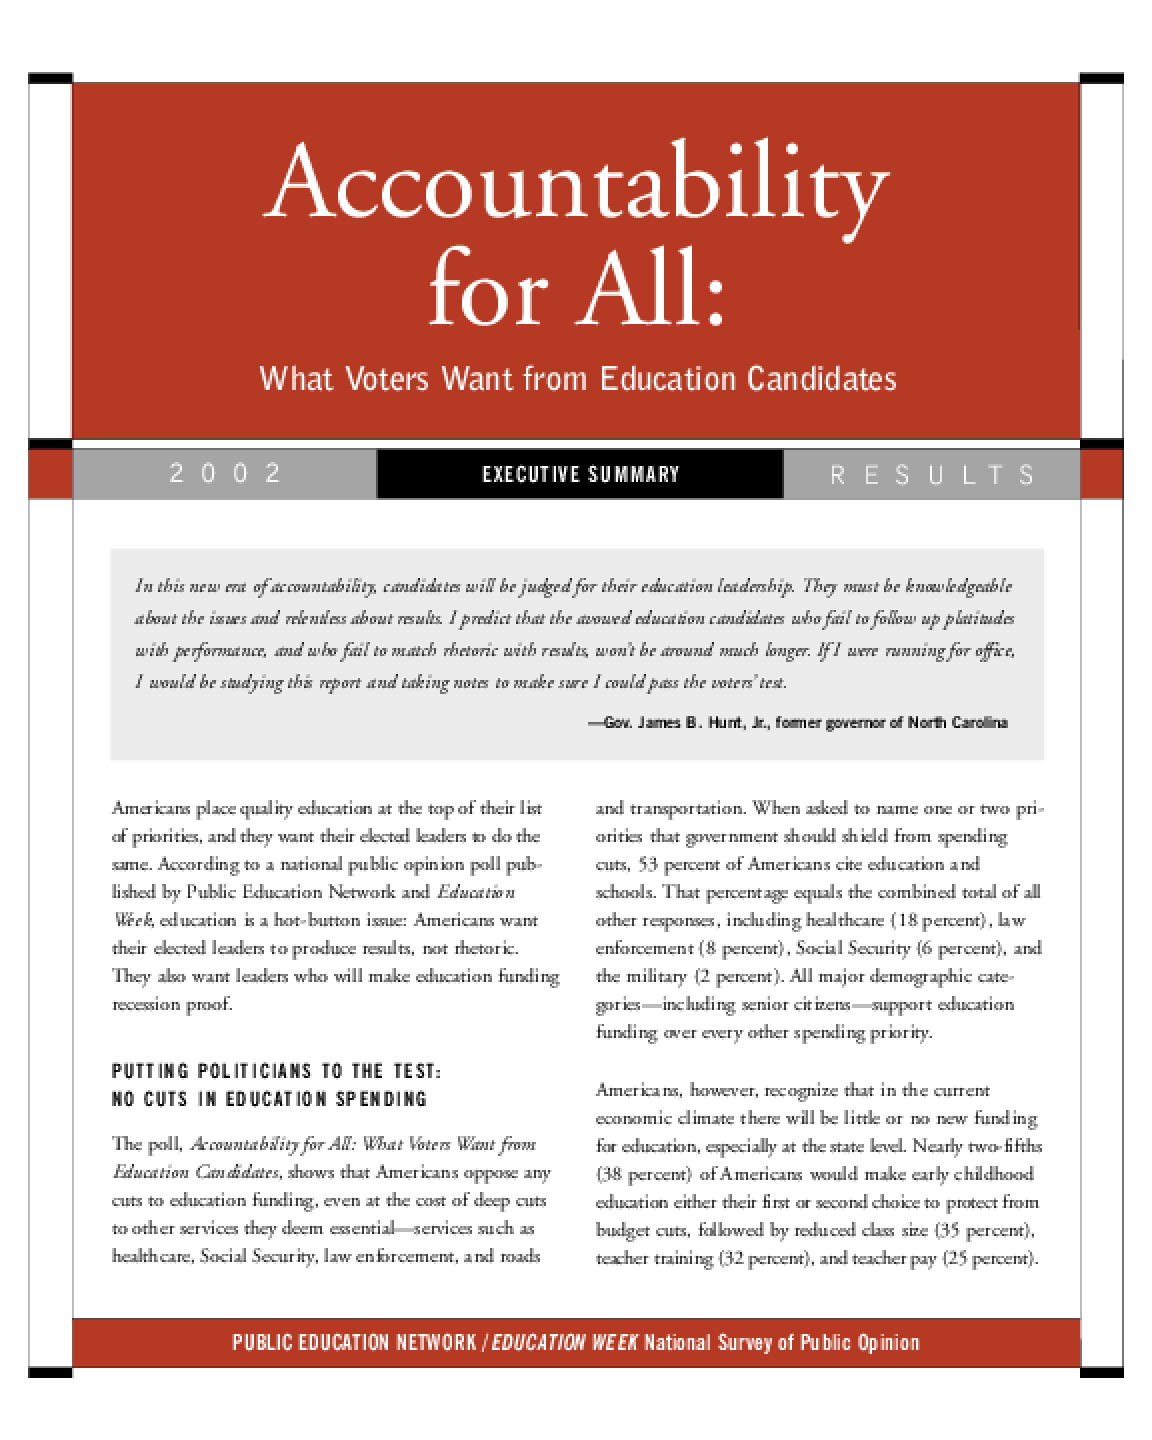 Accountability for All: What Voters Want from Education Candidates - Executive Summary, 2002 Results